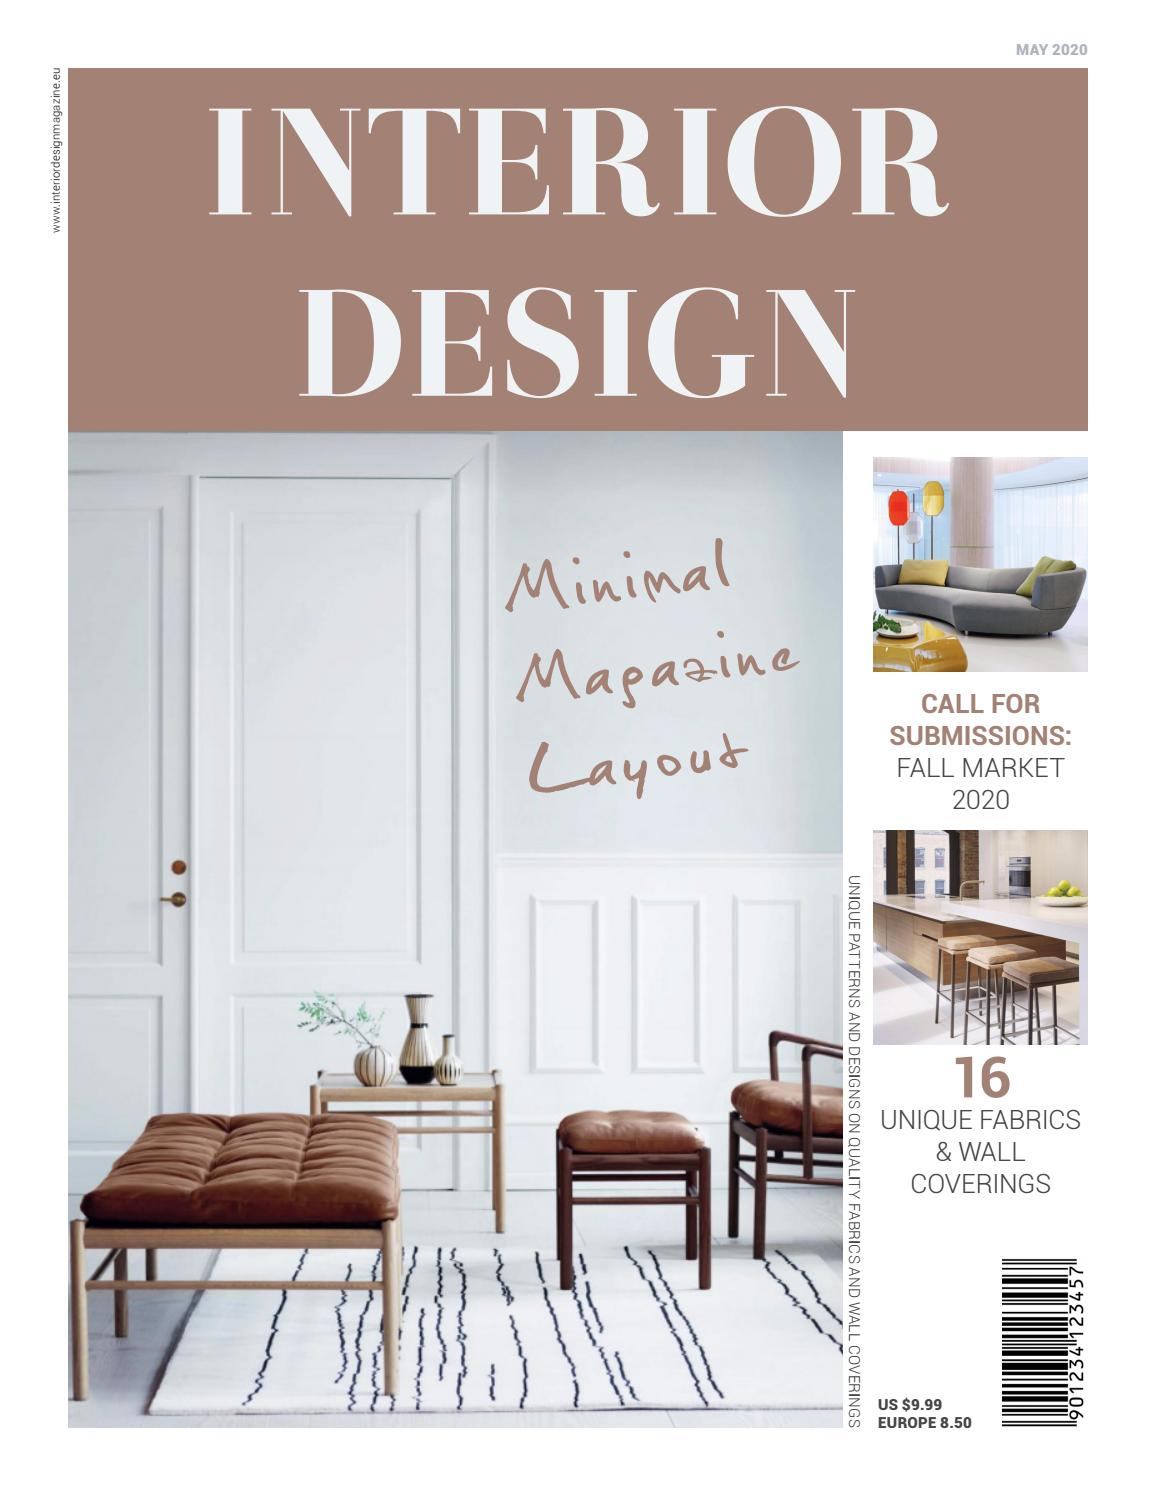 Interior design magazine layout by refresh studio issuu for Interior design magazine